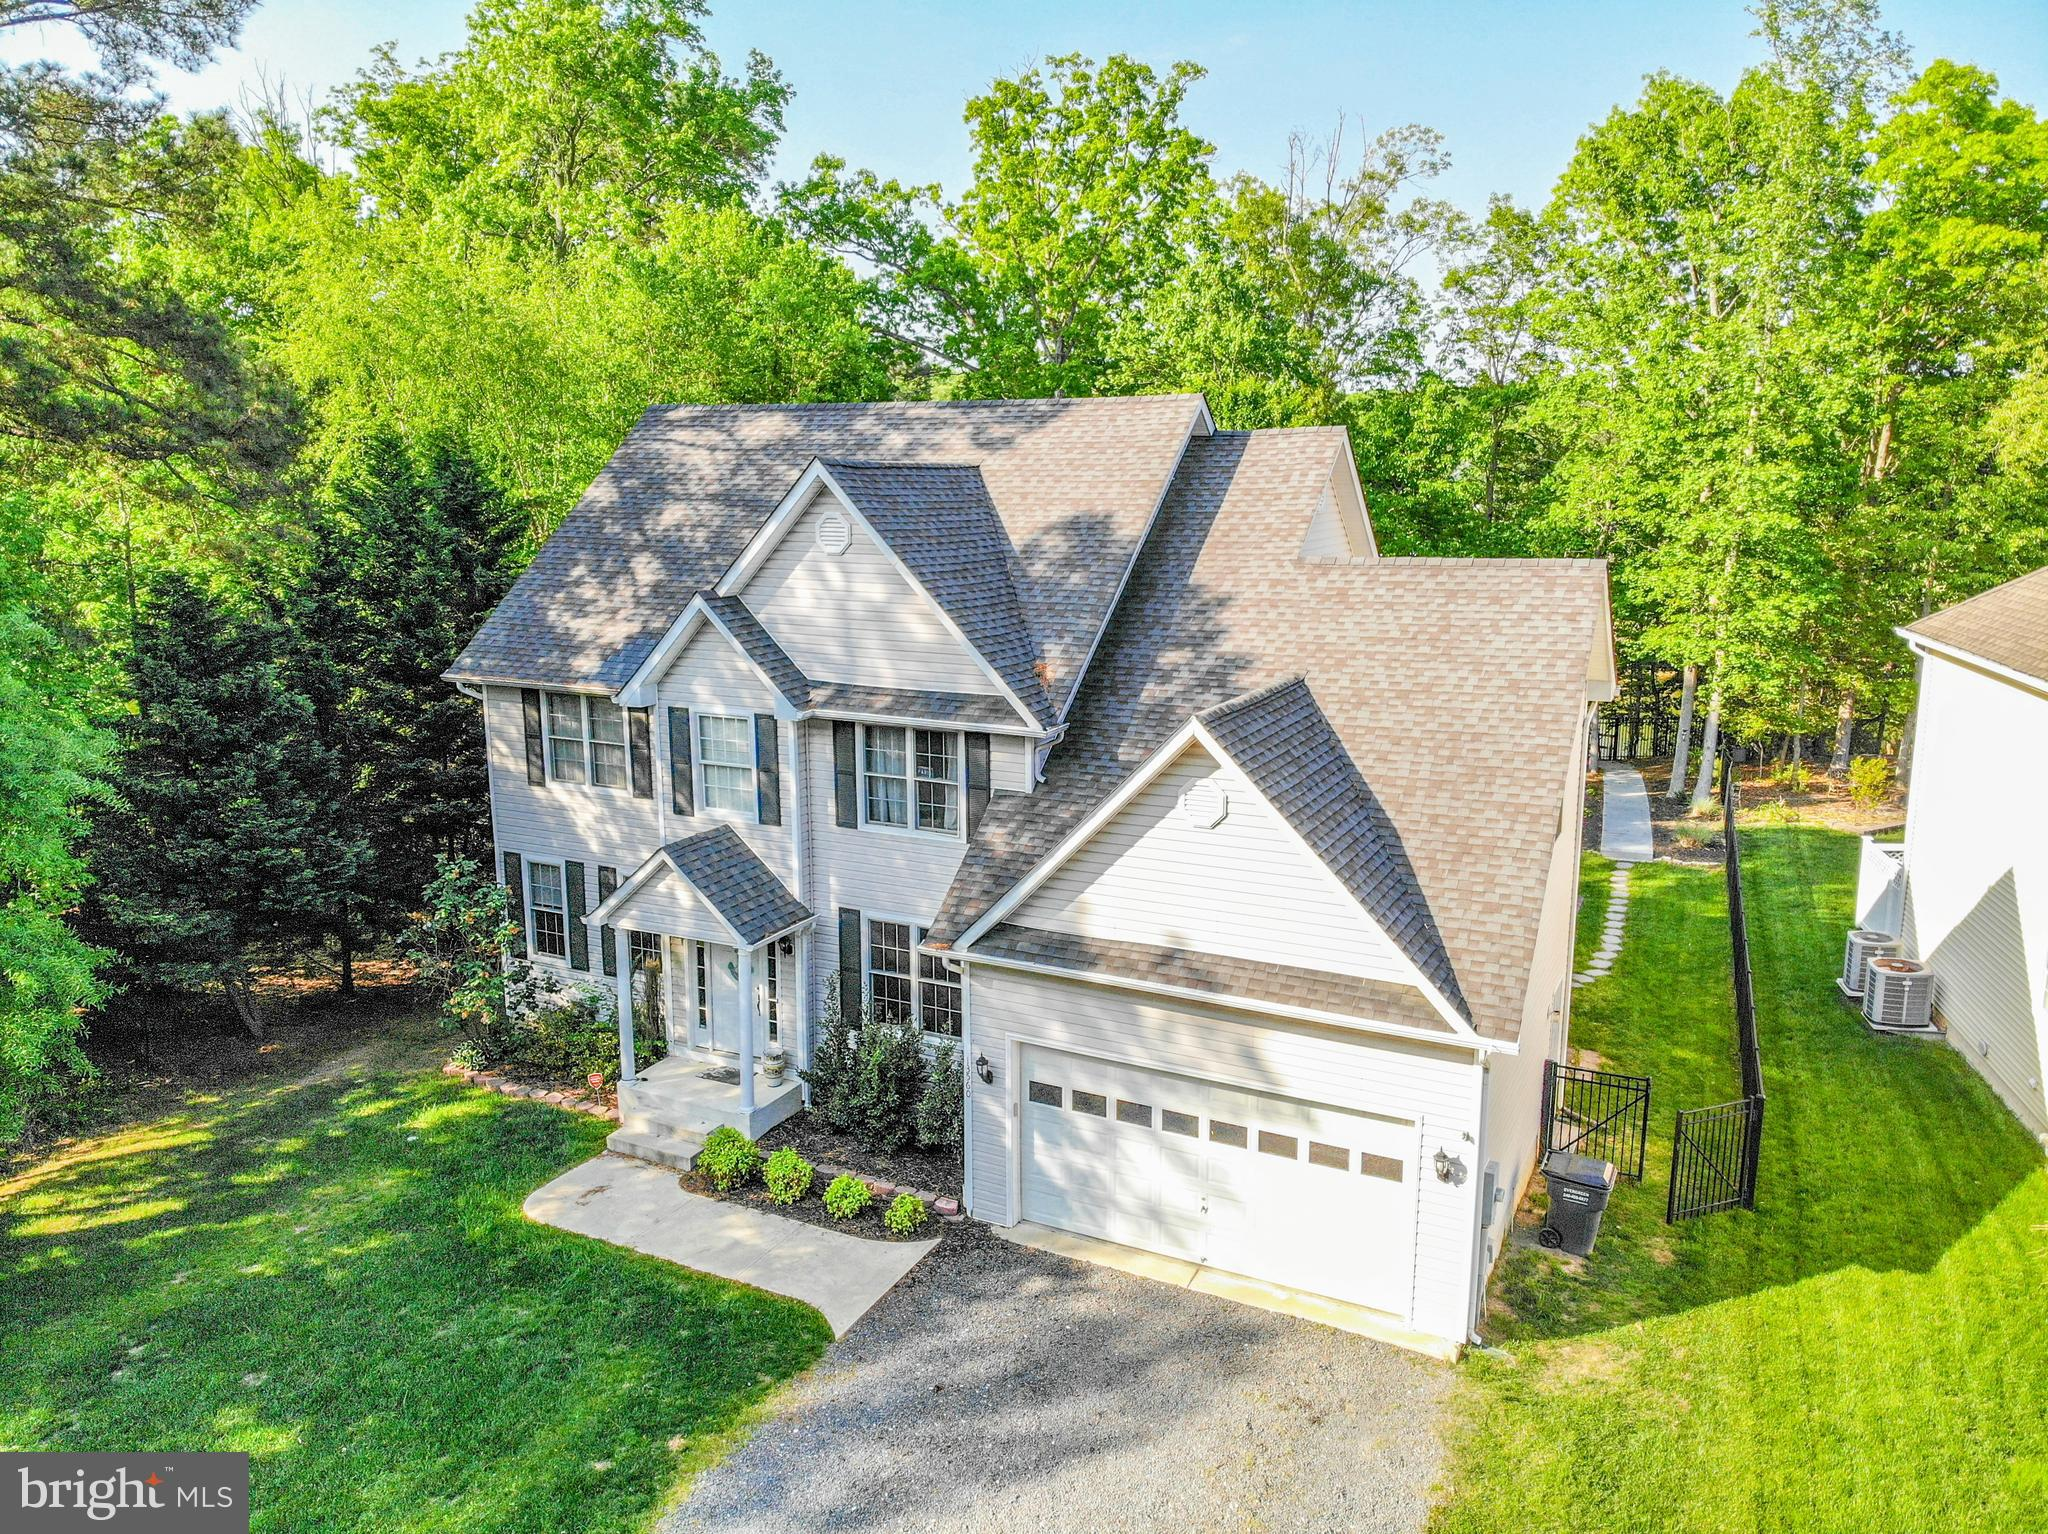 13560 OSPREY LANE, DOWELL, MD 20629